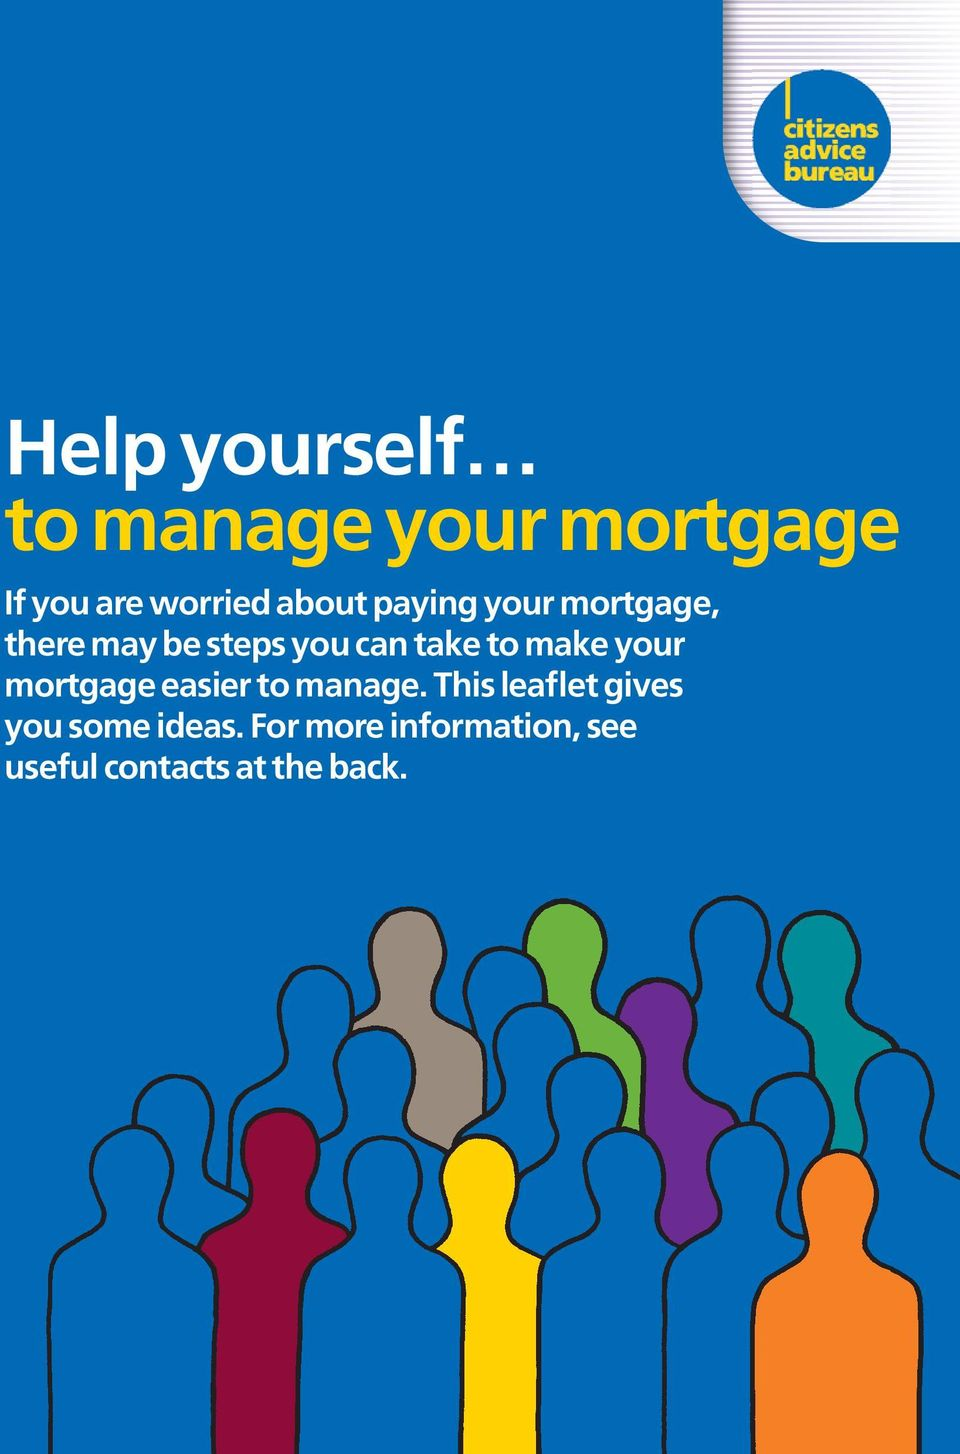 to make your mortgage easier to manage.